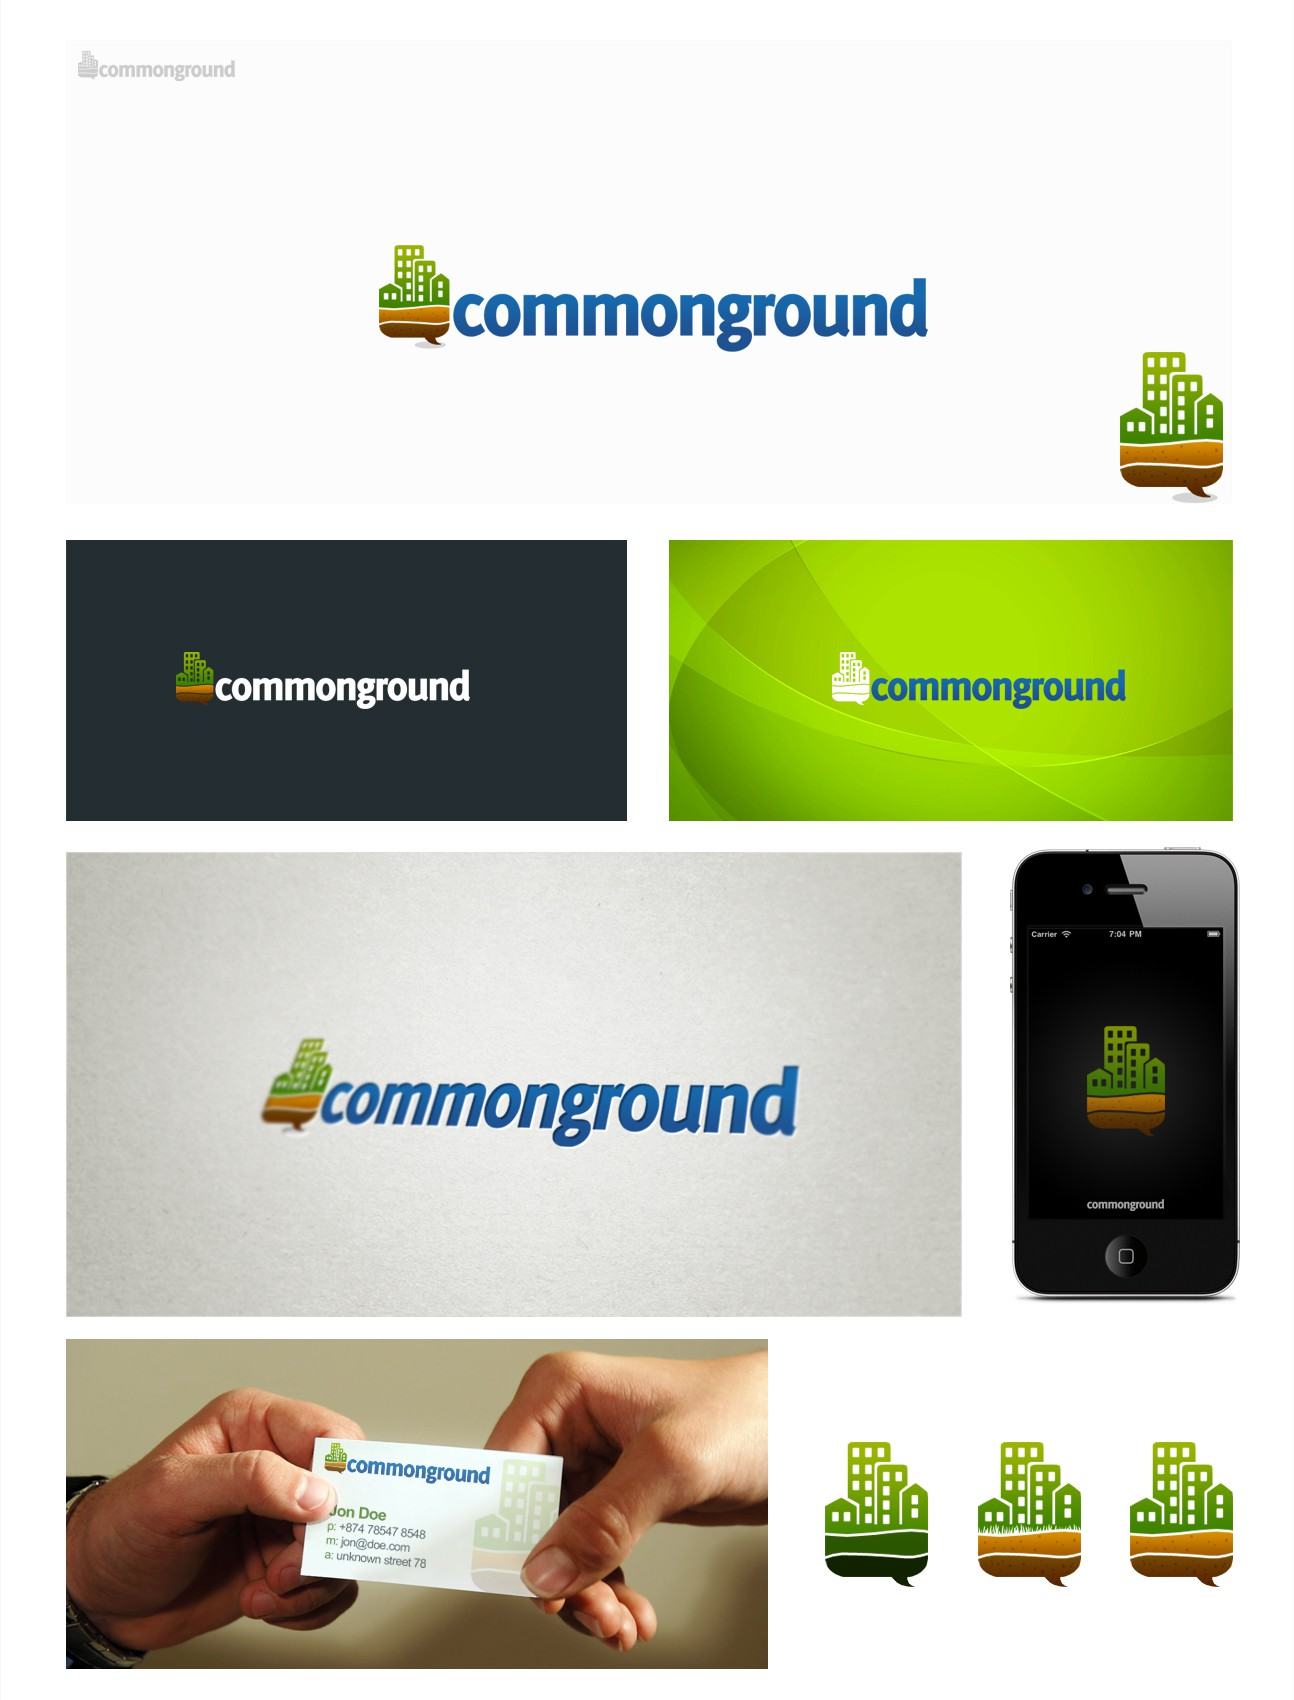 Help commonground with a new logo